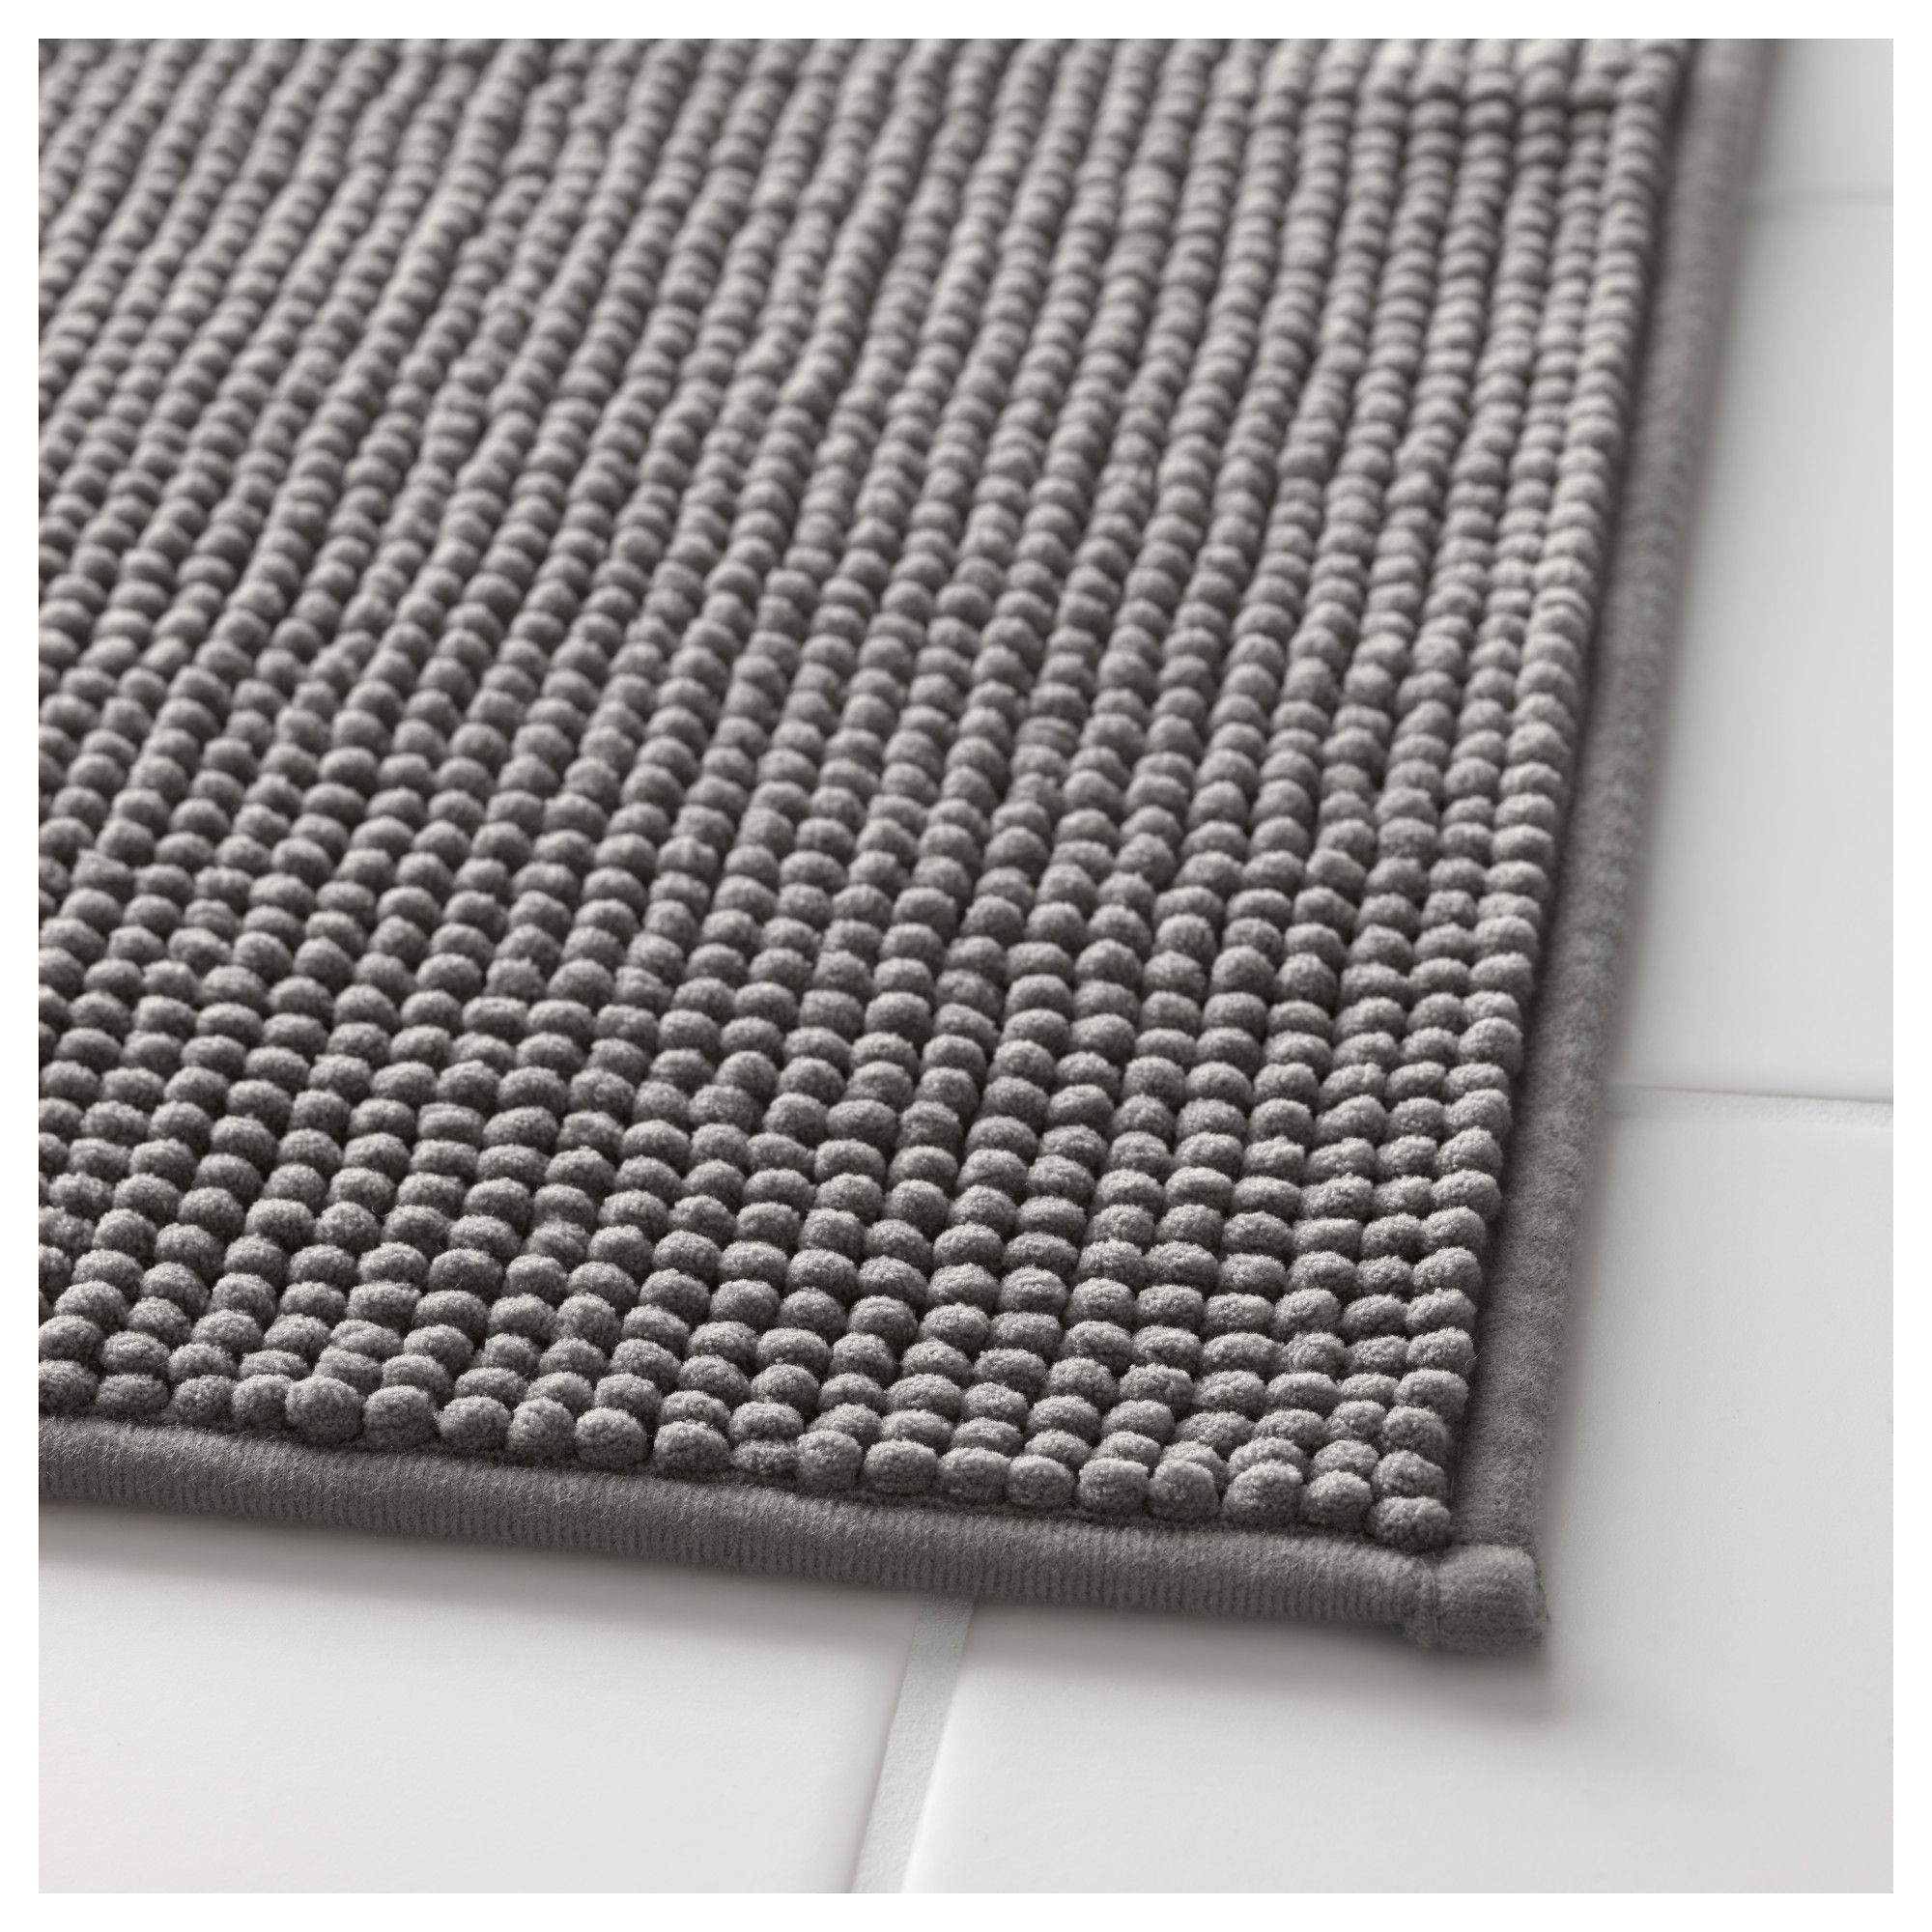 Bath Mat 100/% Cotton Bathroom Floor Rugs Oversized Thick Absorbent Charcoal